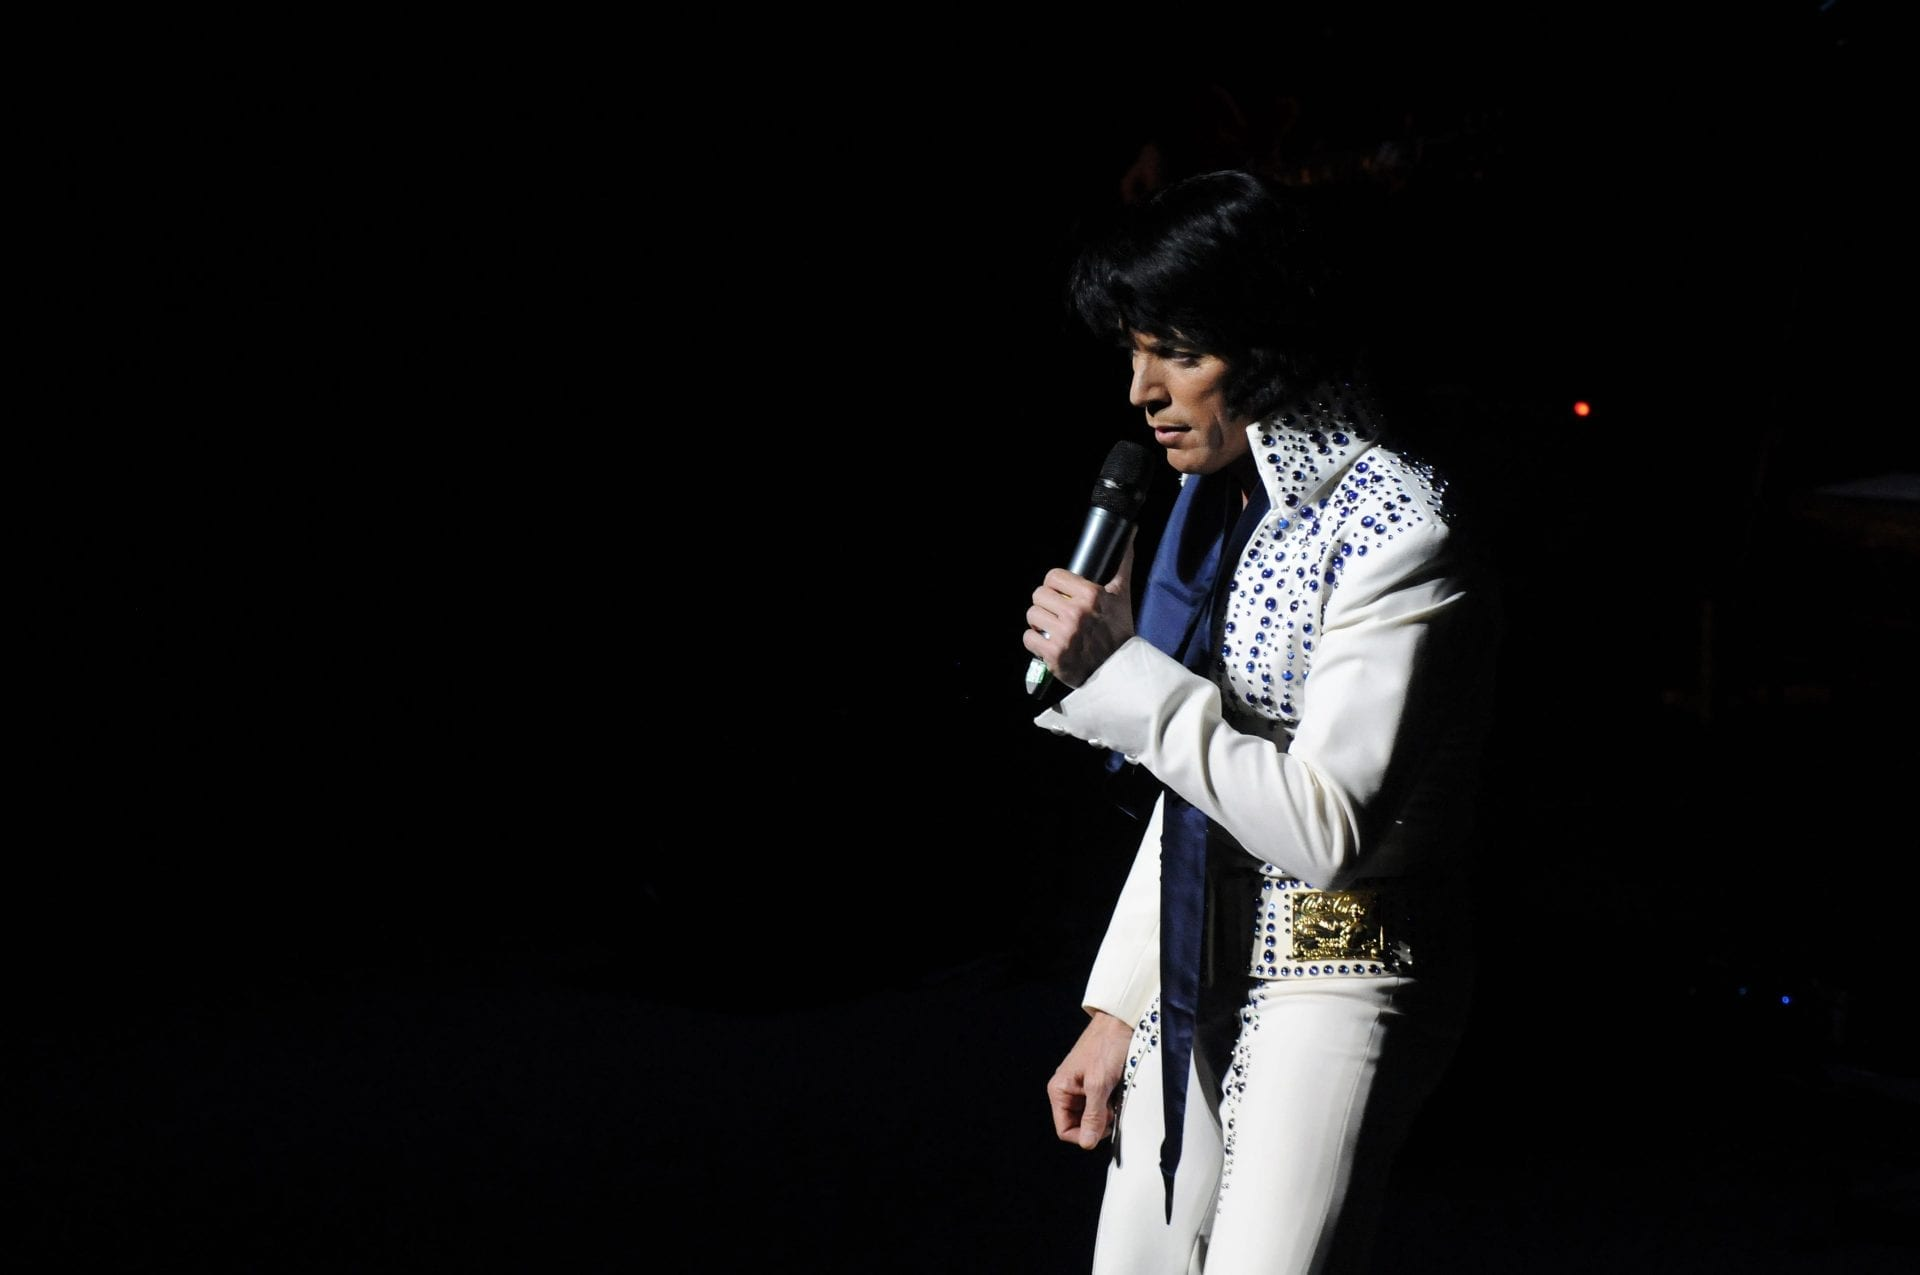 Lee Memphis King One Night Of Elvis Tivoli Theatre